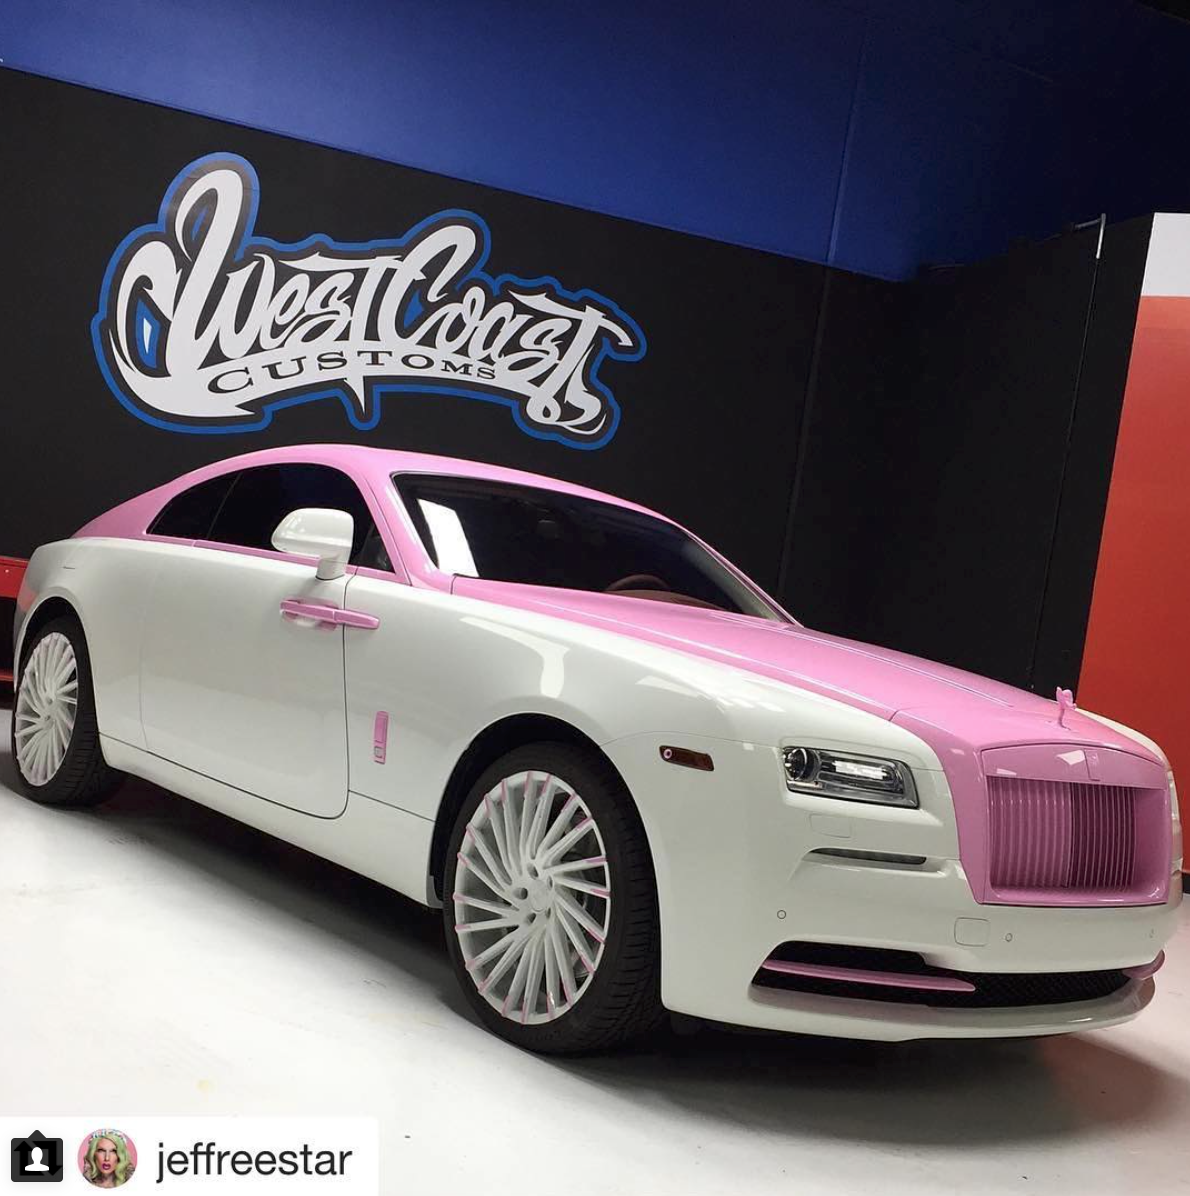 Jeffree Star Has Another New Rolls Royce Celebrity Cars Blog